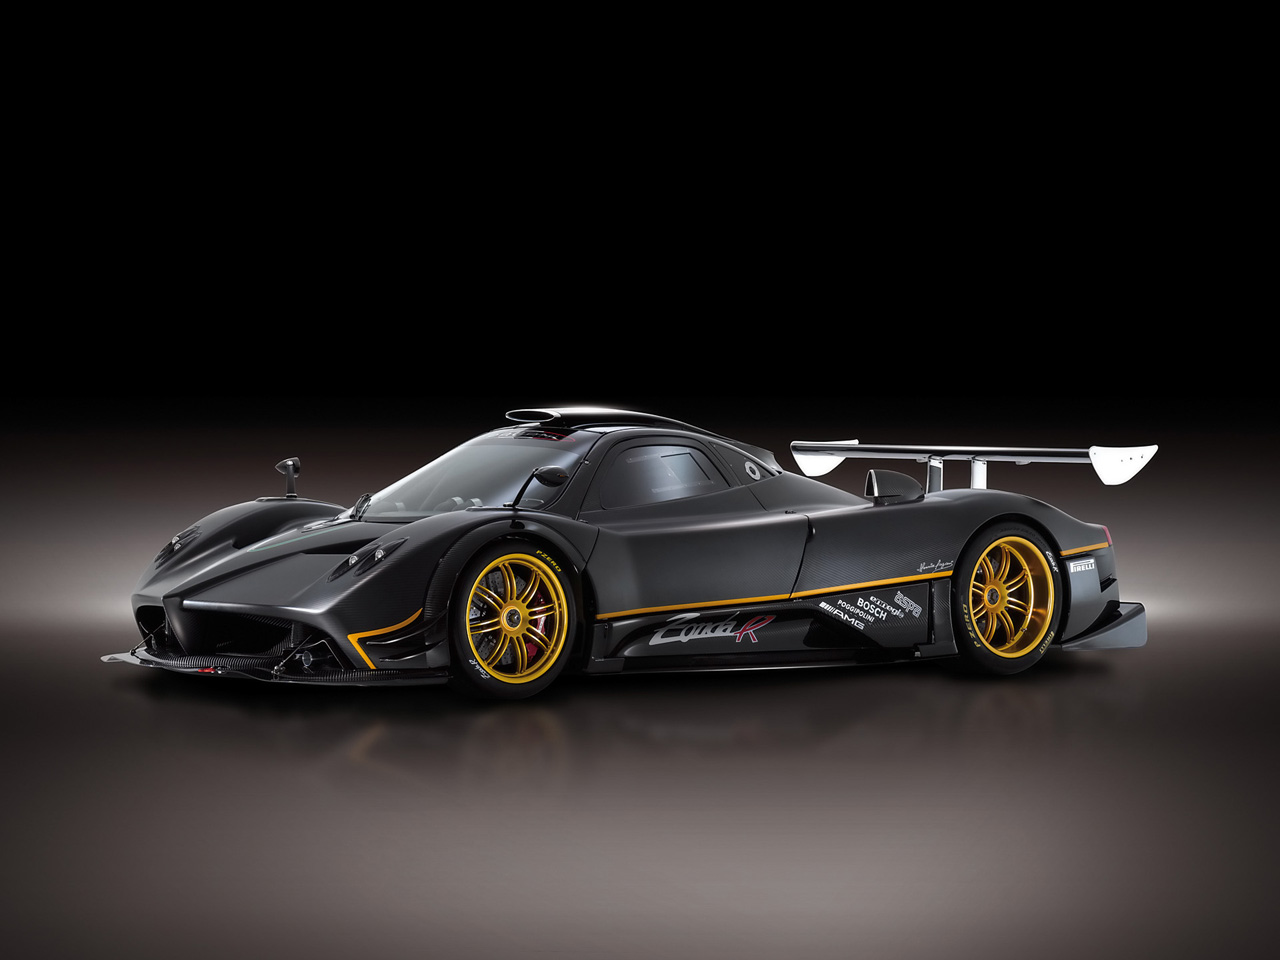 http://2.bp.blogspot.com/-veQO2Agv9Nw/TlifHTi8d1I/AAAAAAAAD_E/OaCfkr1LZJo/s1600/2009-pagani-zonda-r-2-pictures-cars-wallpapers.jpg